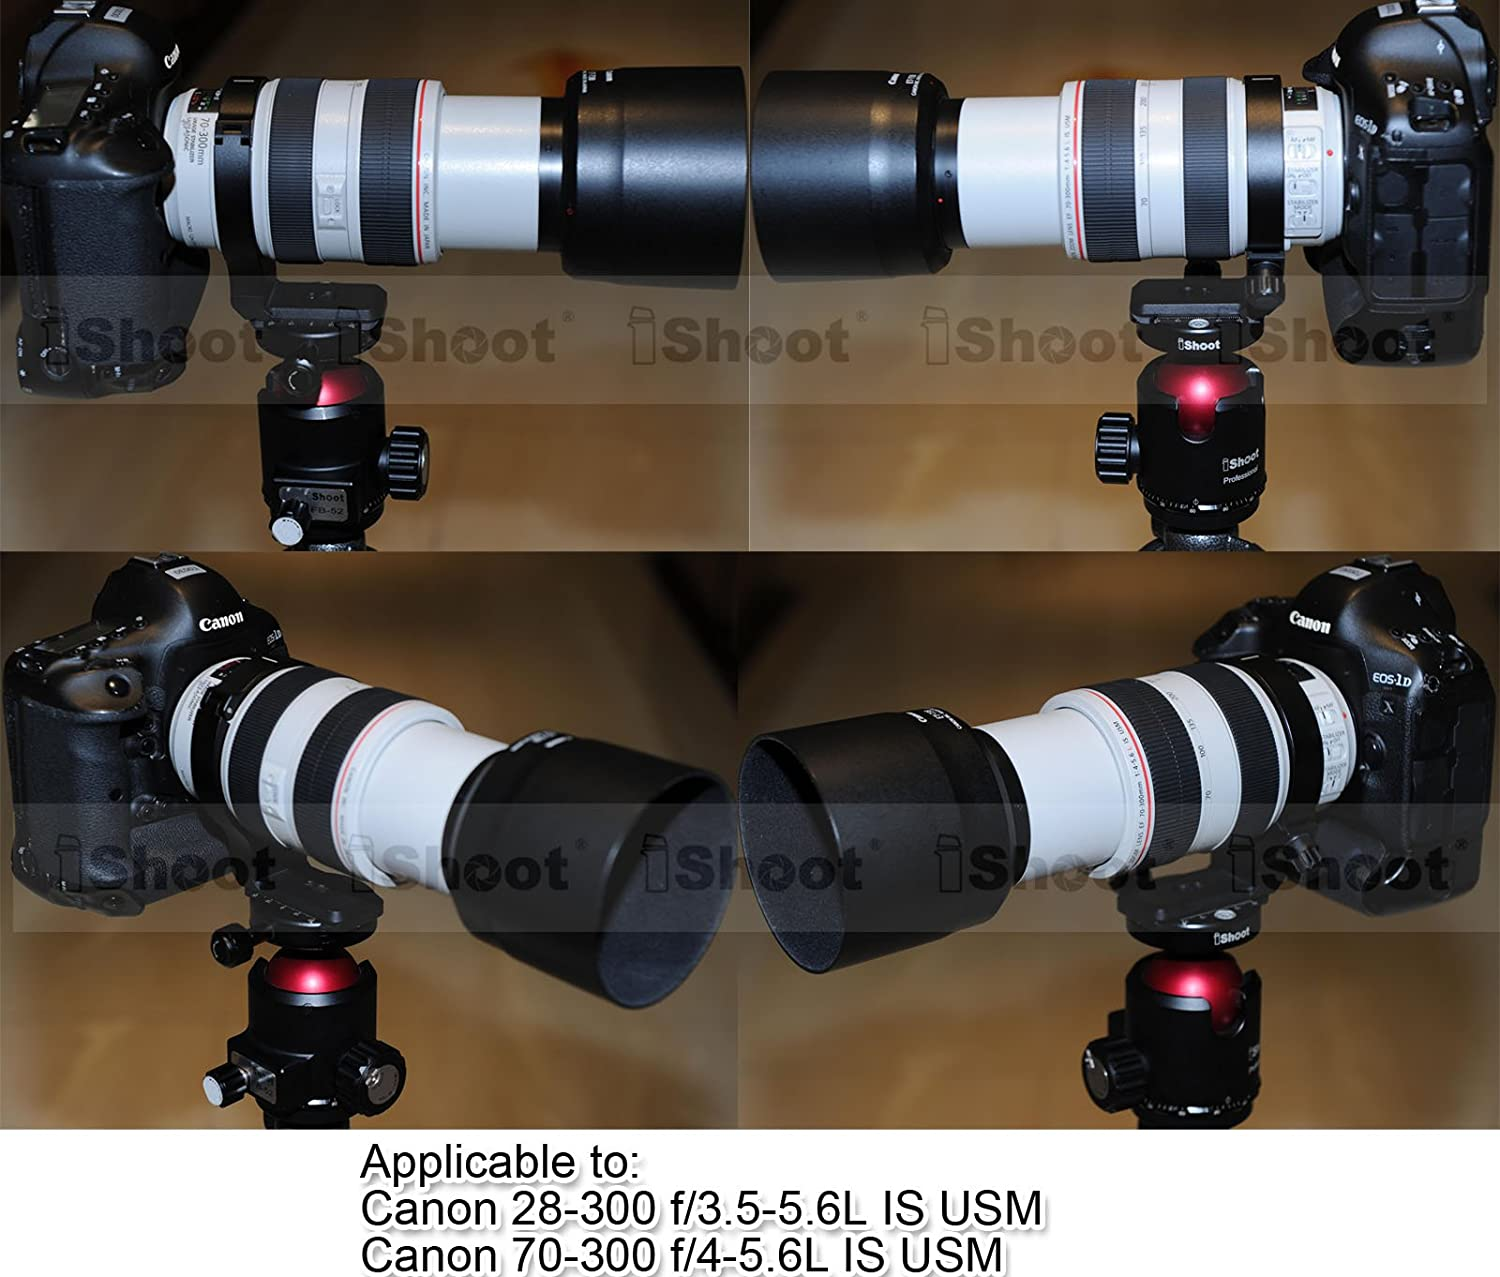 Canon EF 70-300mm f//4-5.6L IS USM iShoot Latest Metal Lens Support Collar Tripod Mount Ring for Canon EF 28-300mm f//3.5-5.6L IS USM Bottom is Camera Quick Release Plate